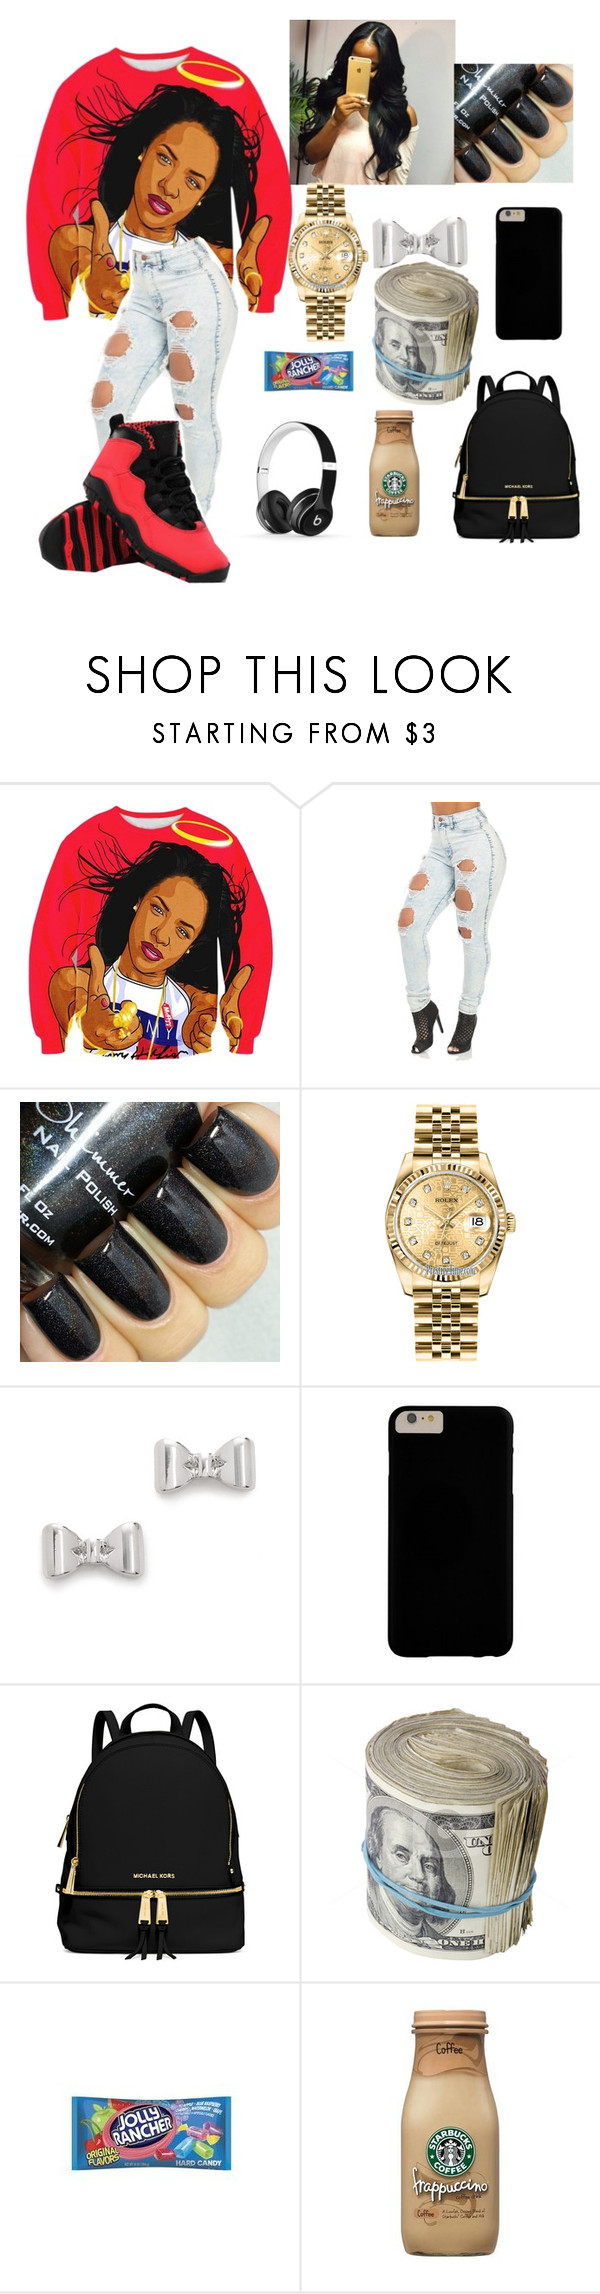 """Work work work"" by myamigos1995me ❤ liked on Polyvore featuring Rolex, Marc by Marc Jacobs, MICHAEL Michael Kors, Hard Candy and Beats by Dr. Dre"